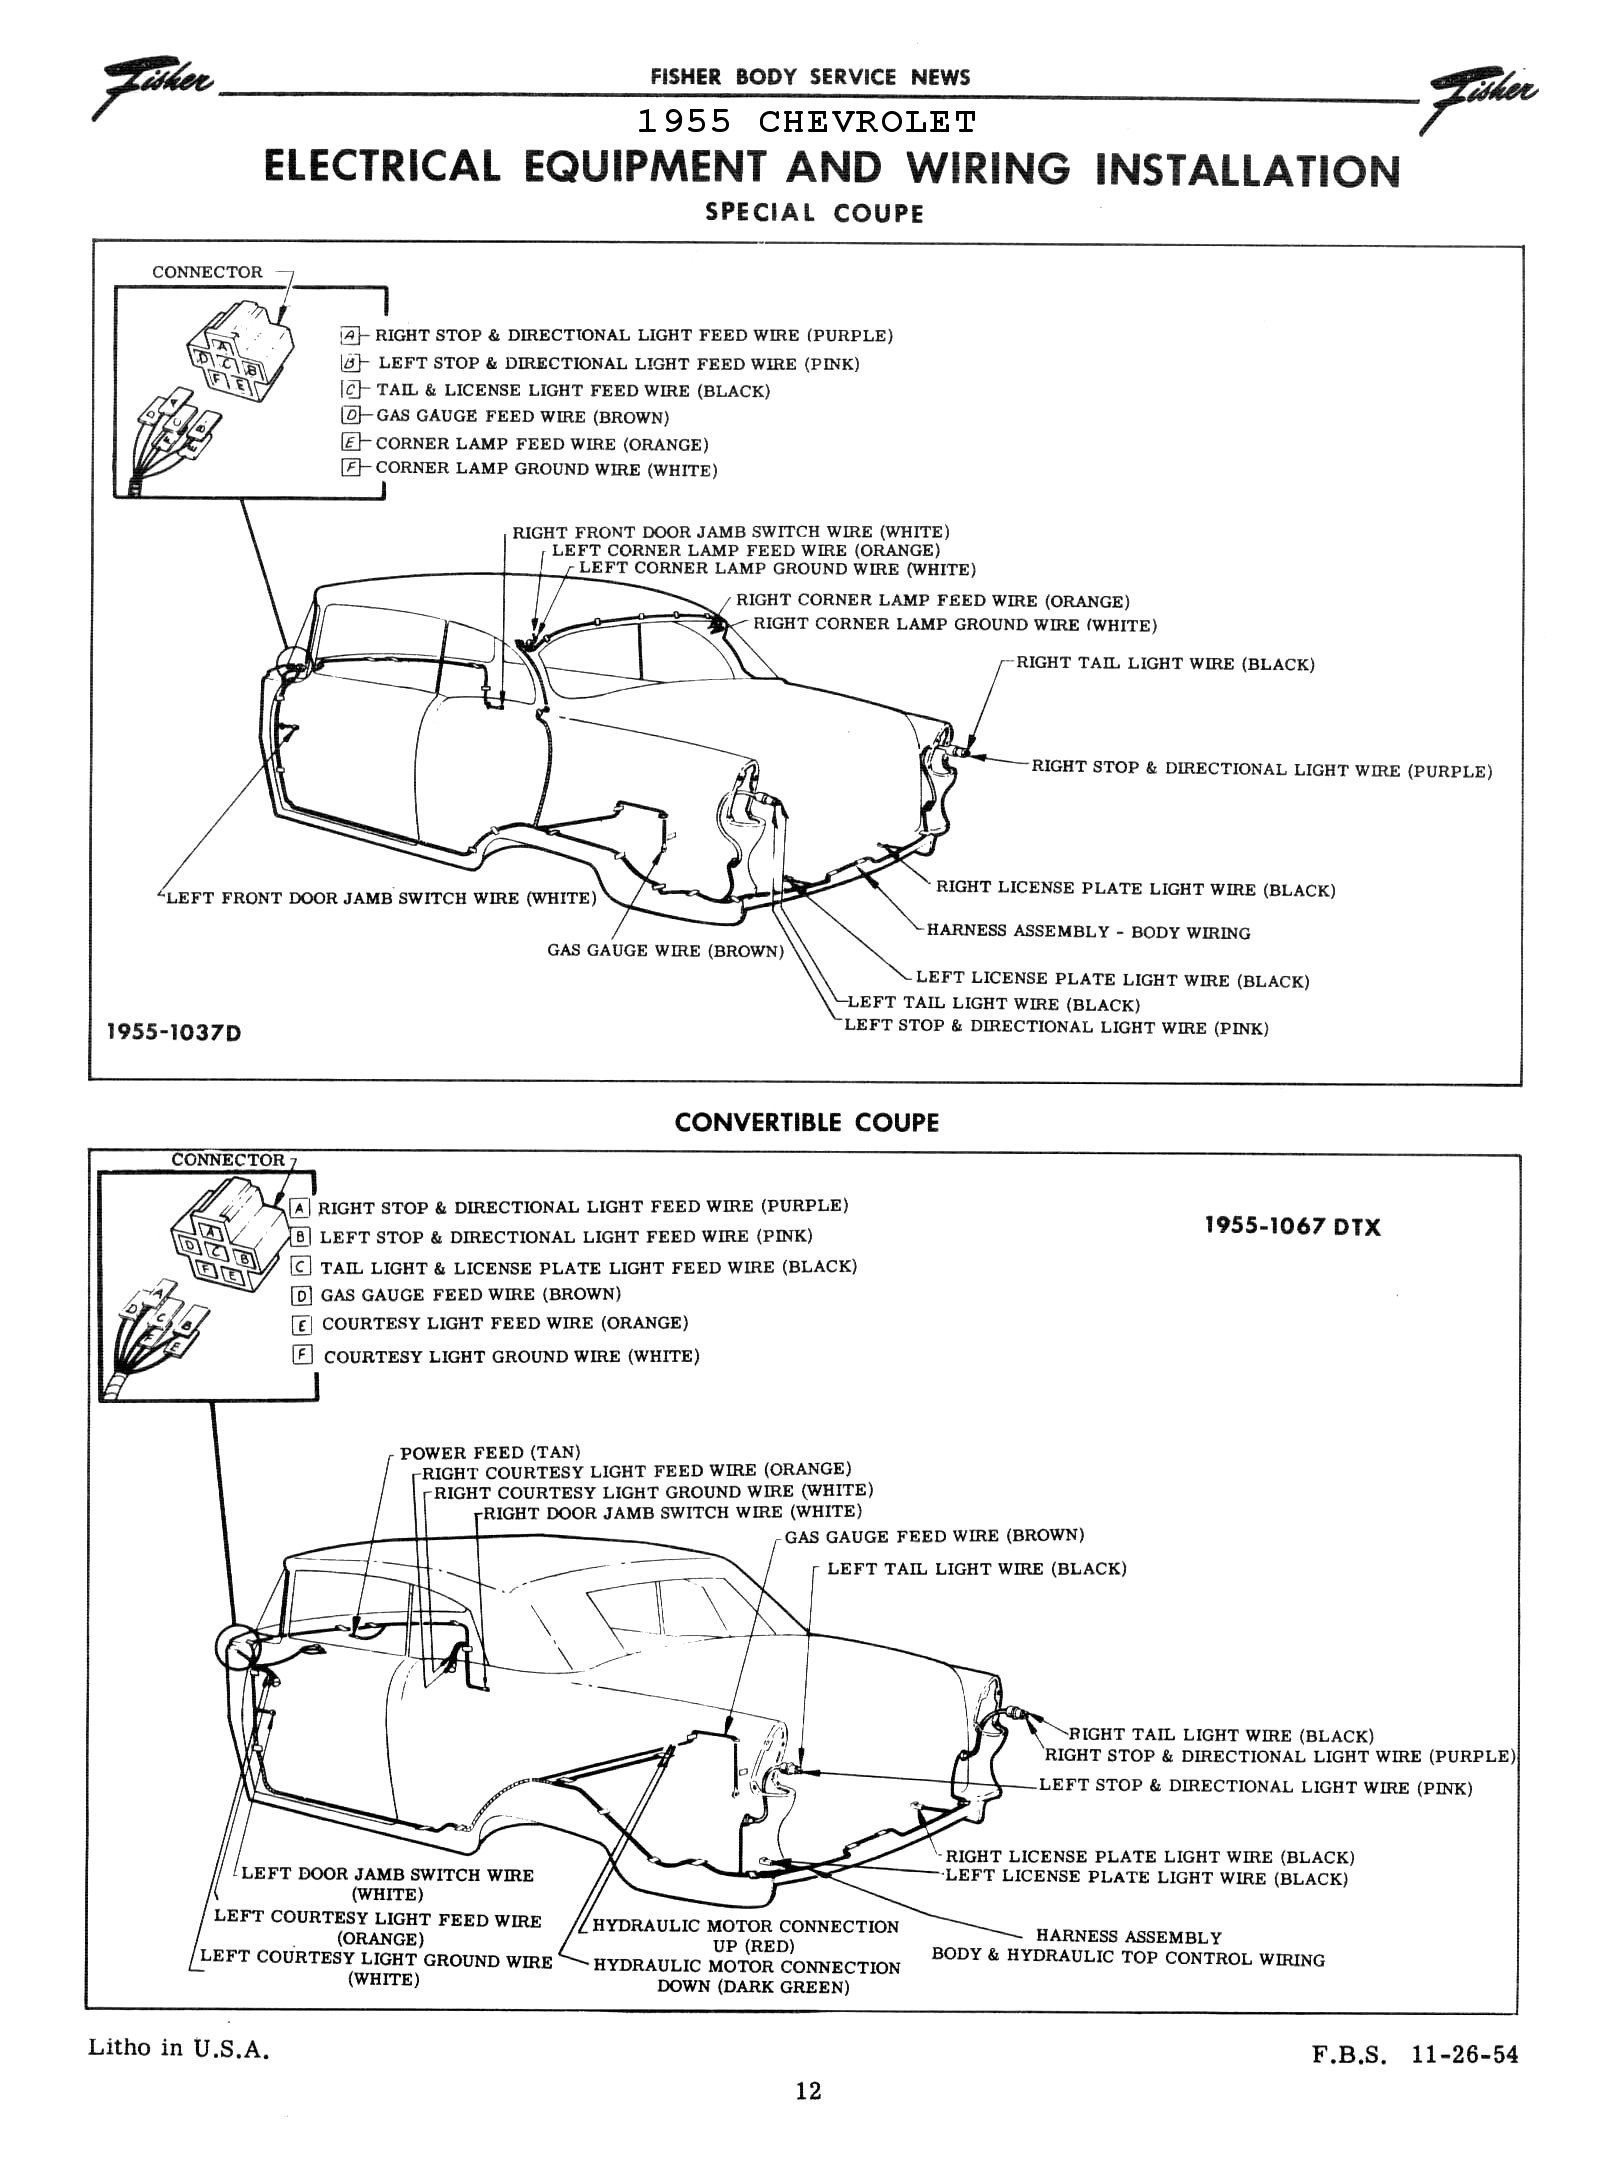 1955 Chevy 210 Turn Signal Wiring Diagram Wire Data And Parts List For Craftsman Welderparts Model 113201440 55 Chev Diagrams Rh Arquetipos Co 53 Ford Switch